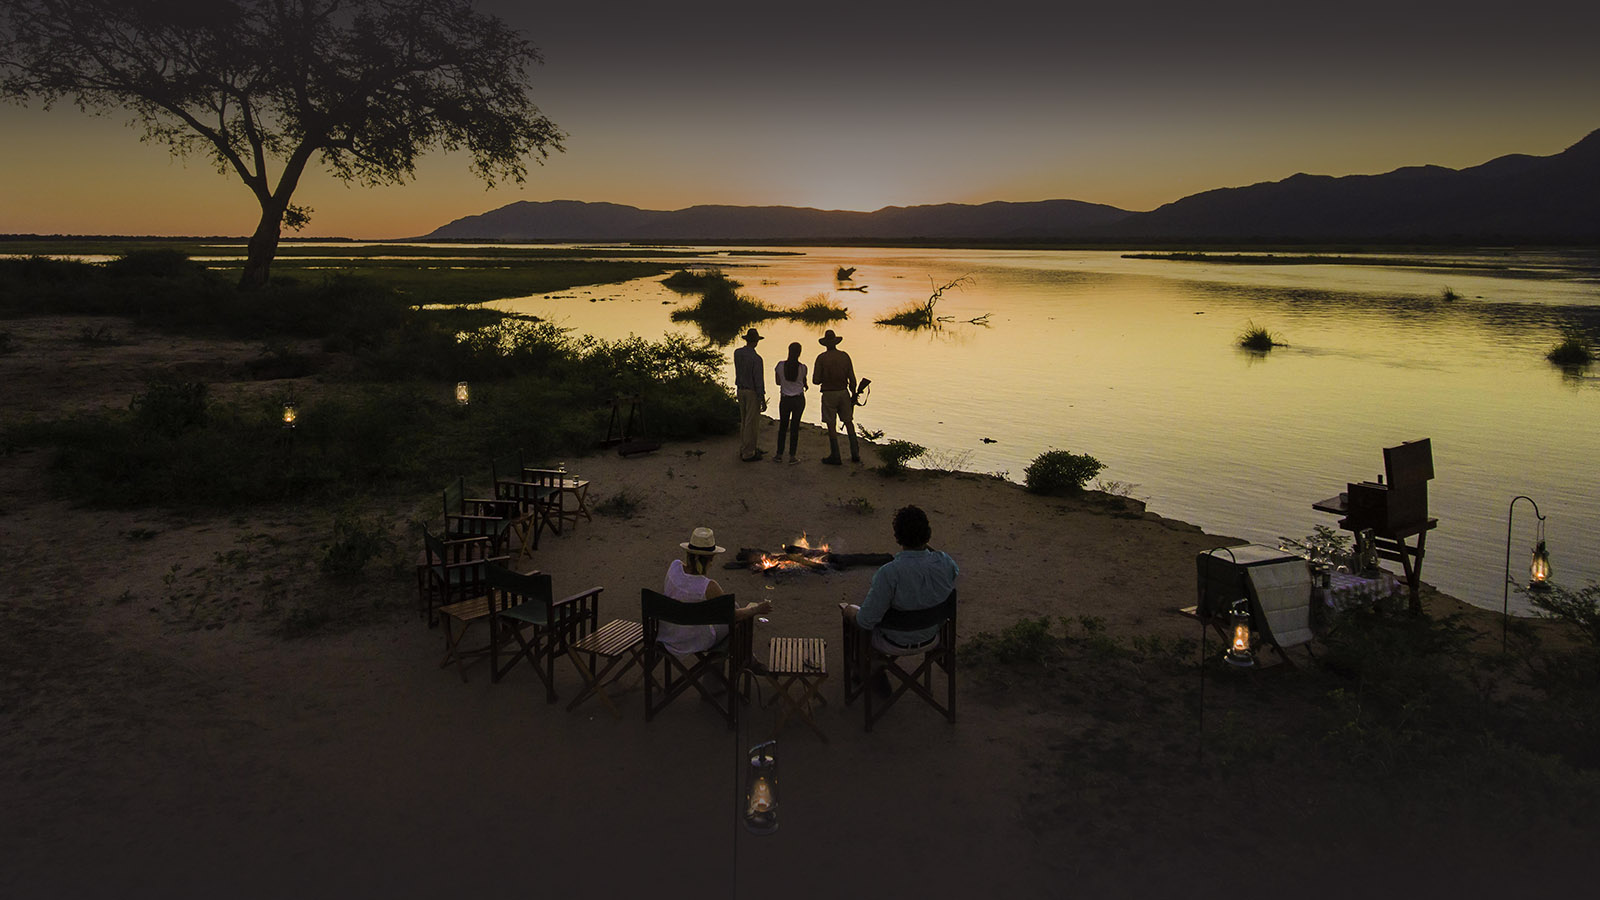 johns camp mana-pools-zimbabwe-accommodation-safari-zambia-in-style-landscape-view